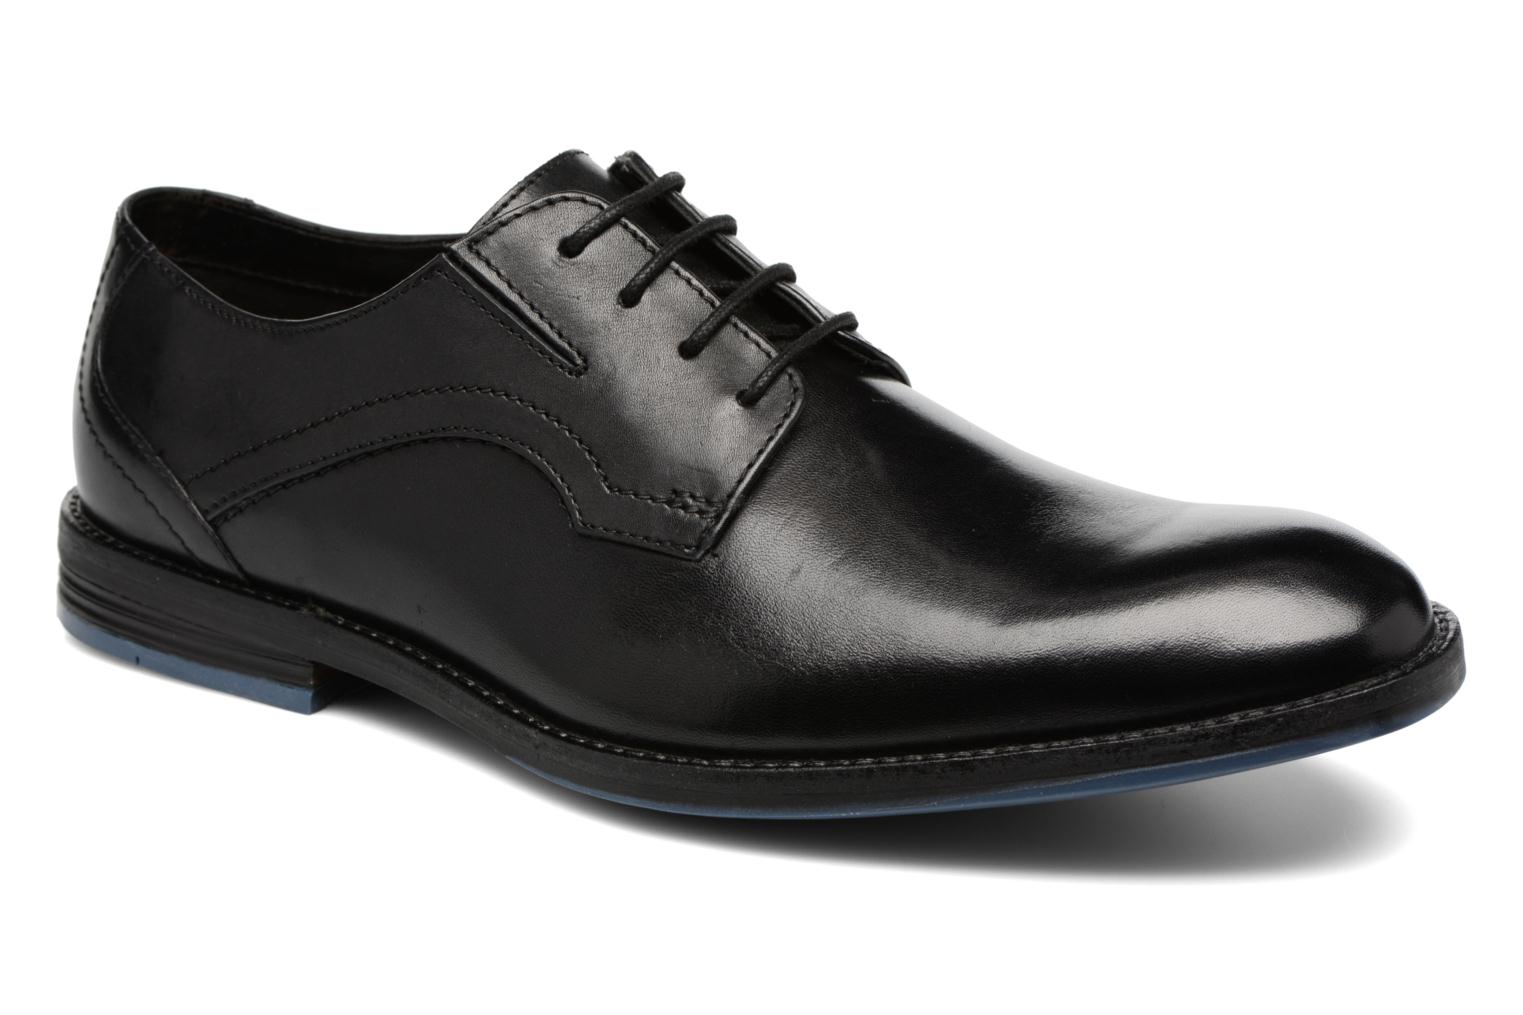 Marques Chaussure homme Clarks homme Prangley Walk Black leather